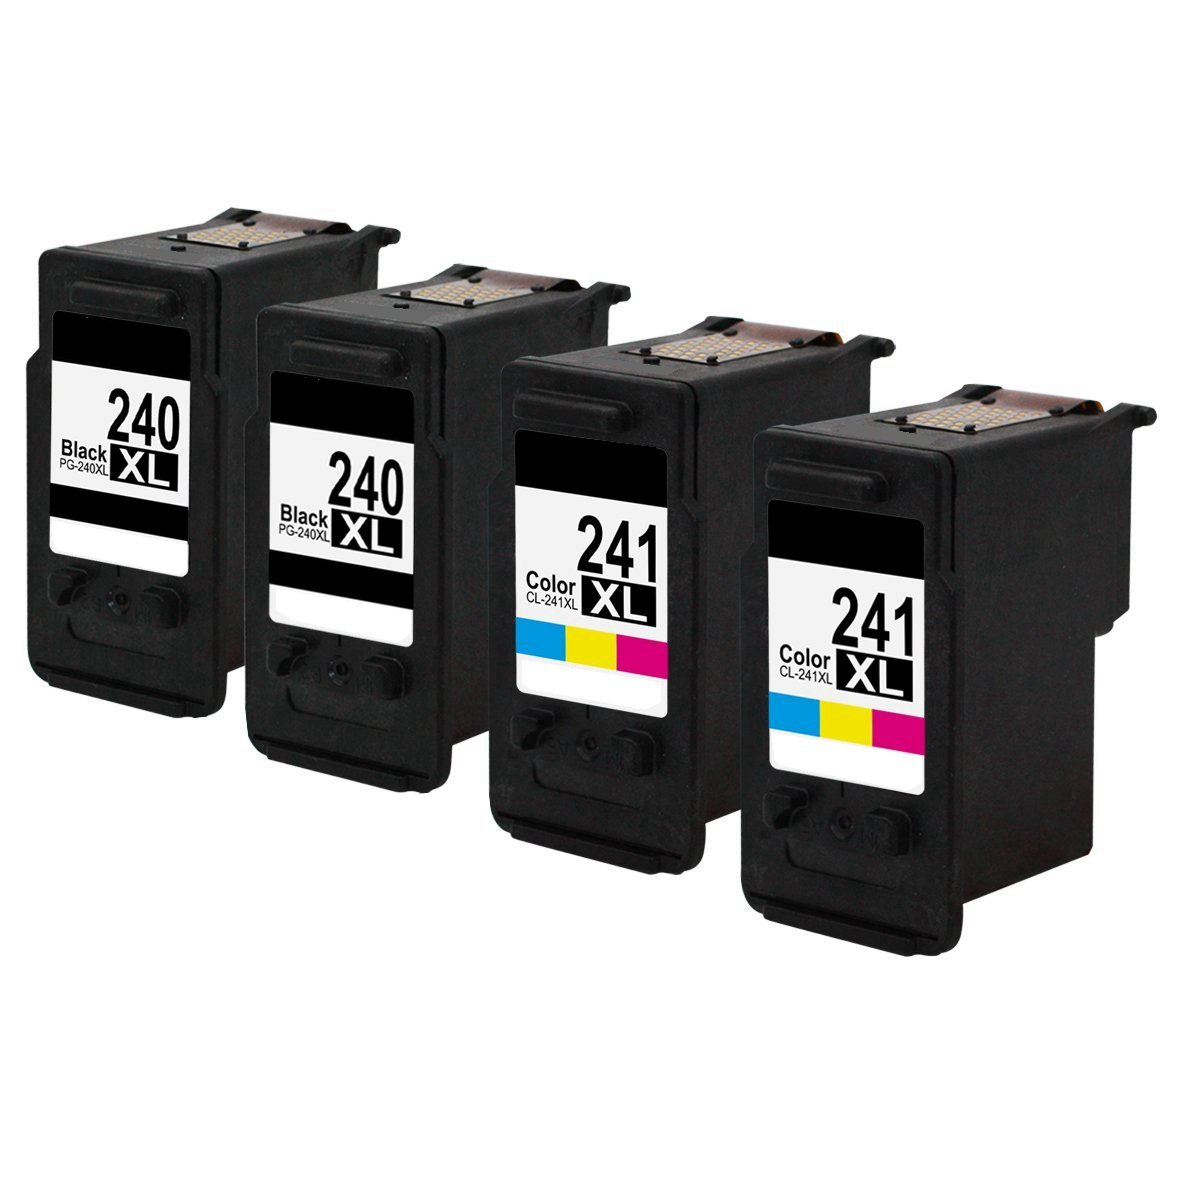 Bosumon PG-240XL CL-241XL Remanufactured Ink Cartridge Replacement For Canon High Yield 5206B005 5206B001 5208B001 Compatible With PIXMA MG2120 MG2220 MG3120 MG3122 MG3222 Printer (1 BLACK, 1 COLOR)